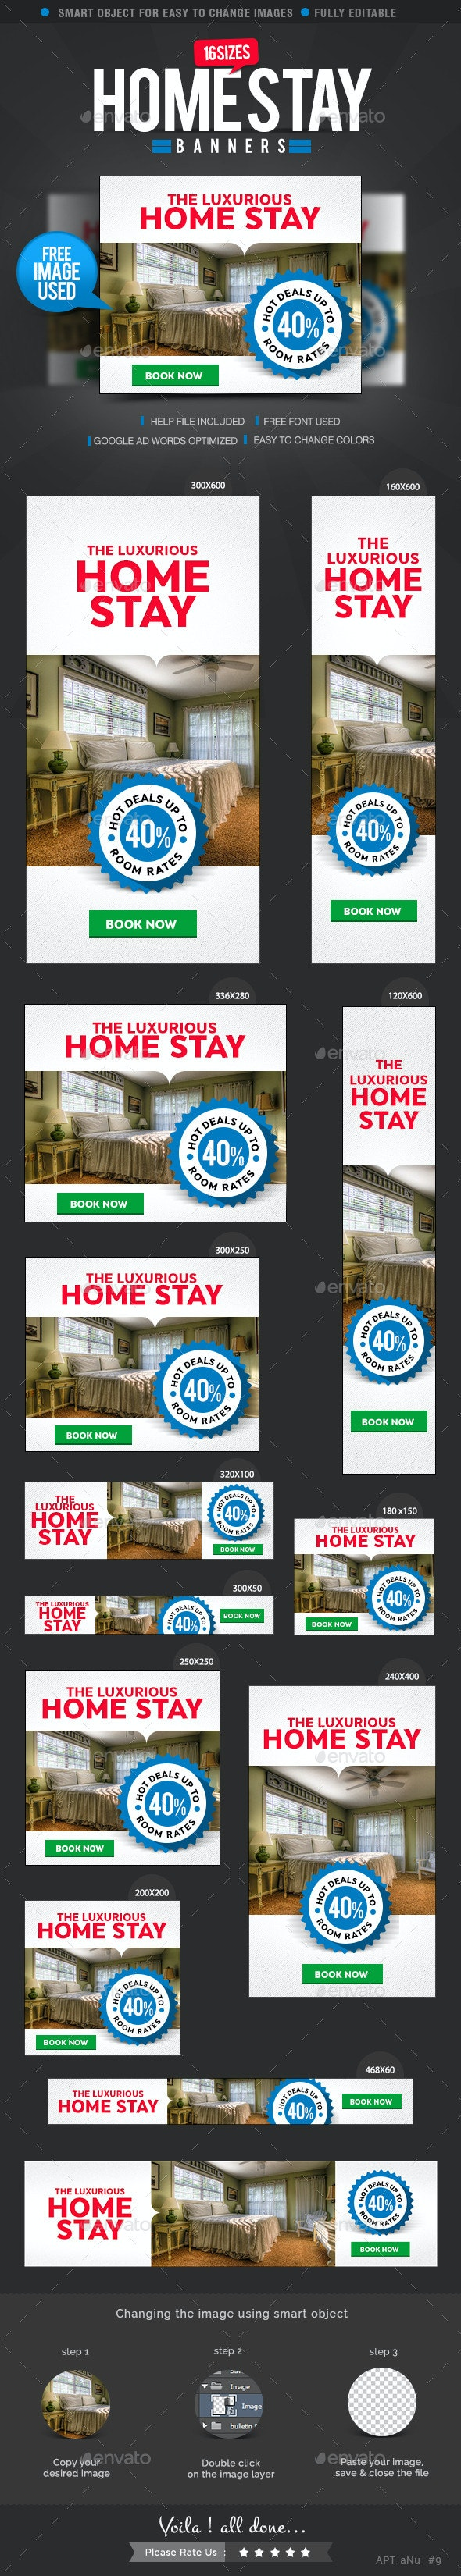 Home Stay Web Banners - Banners & Ads Web Elements